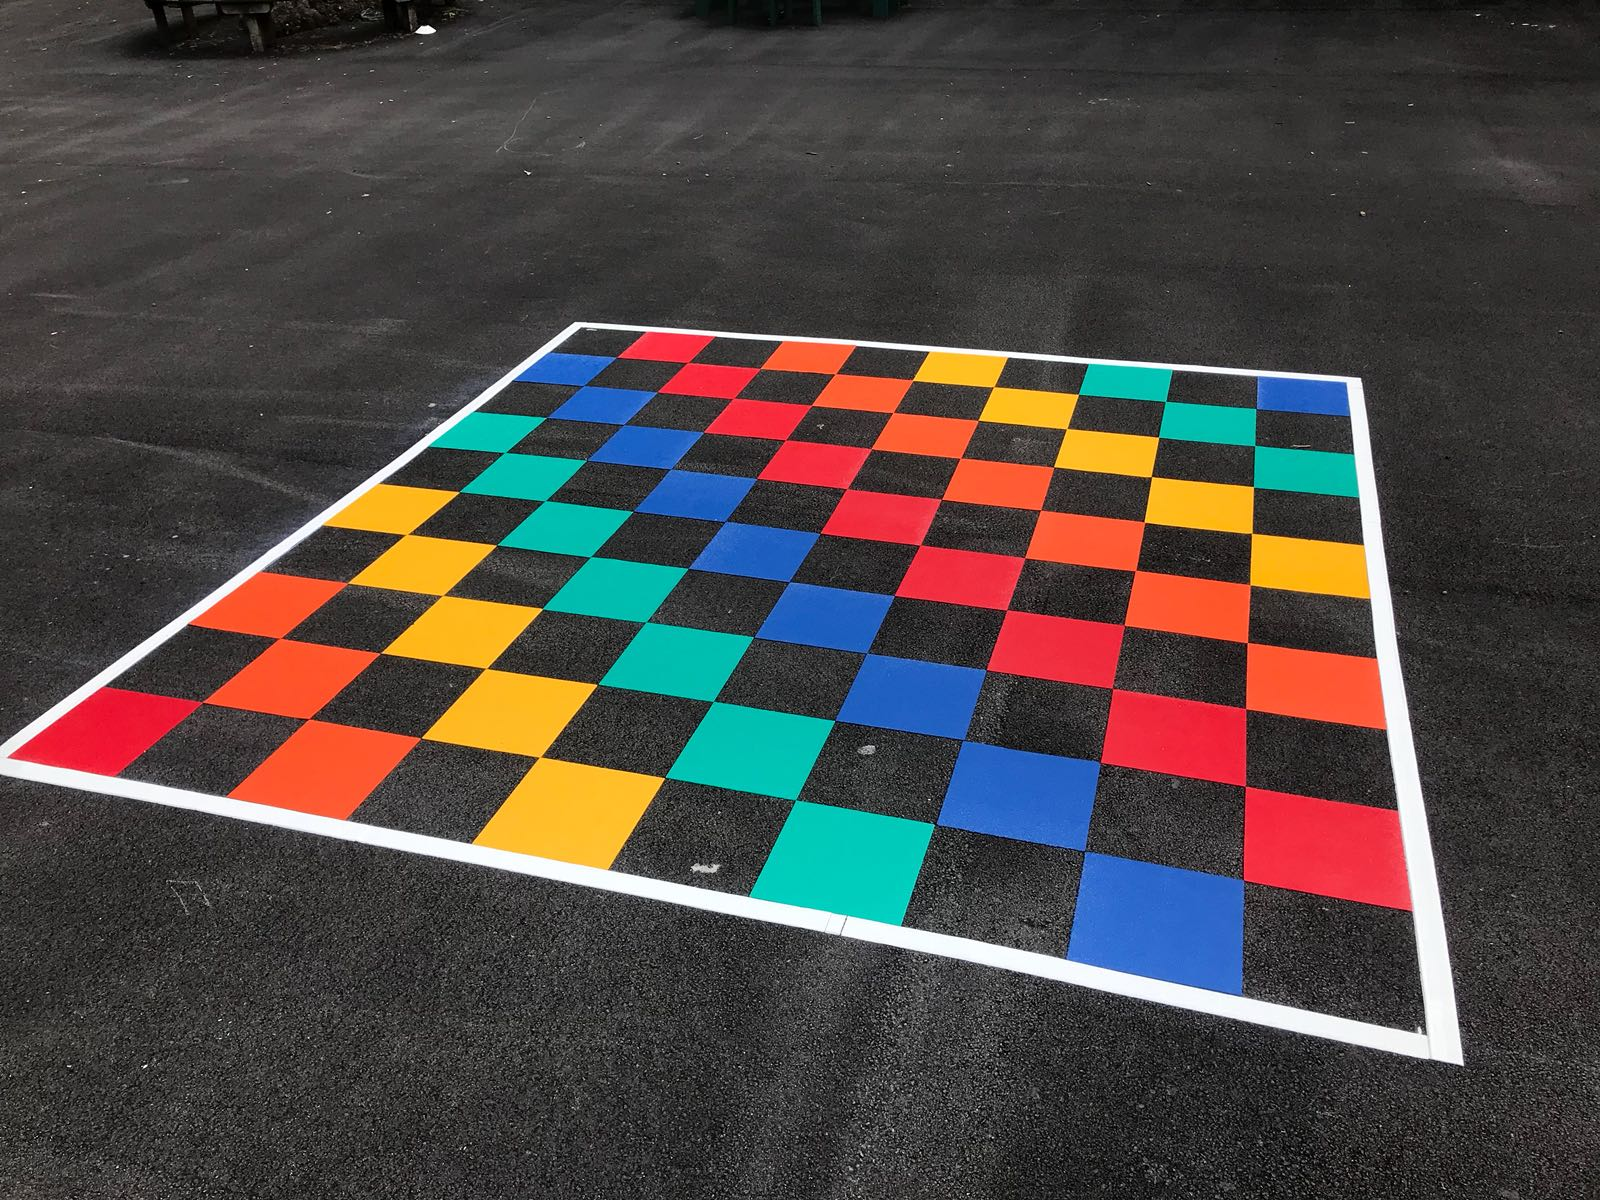 chess-games-markings